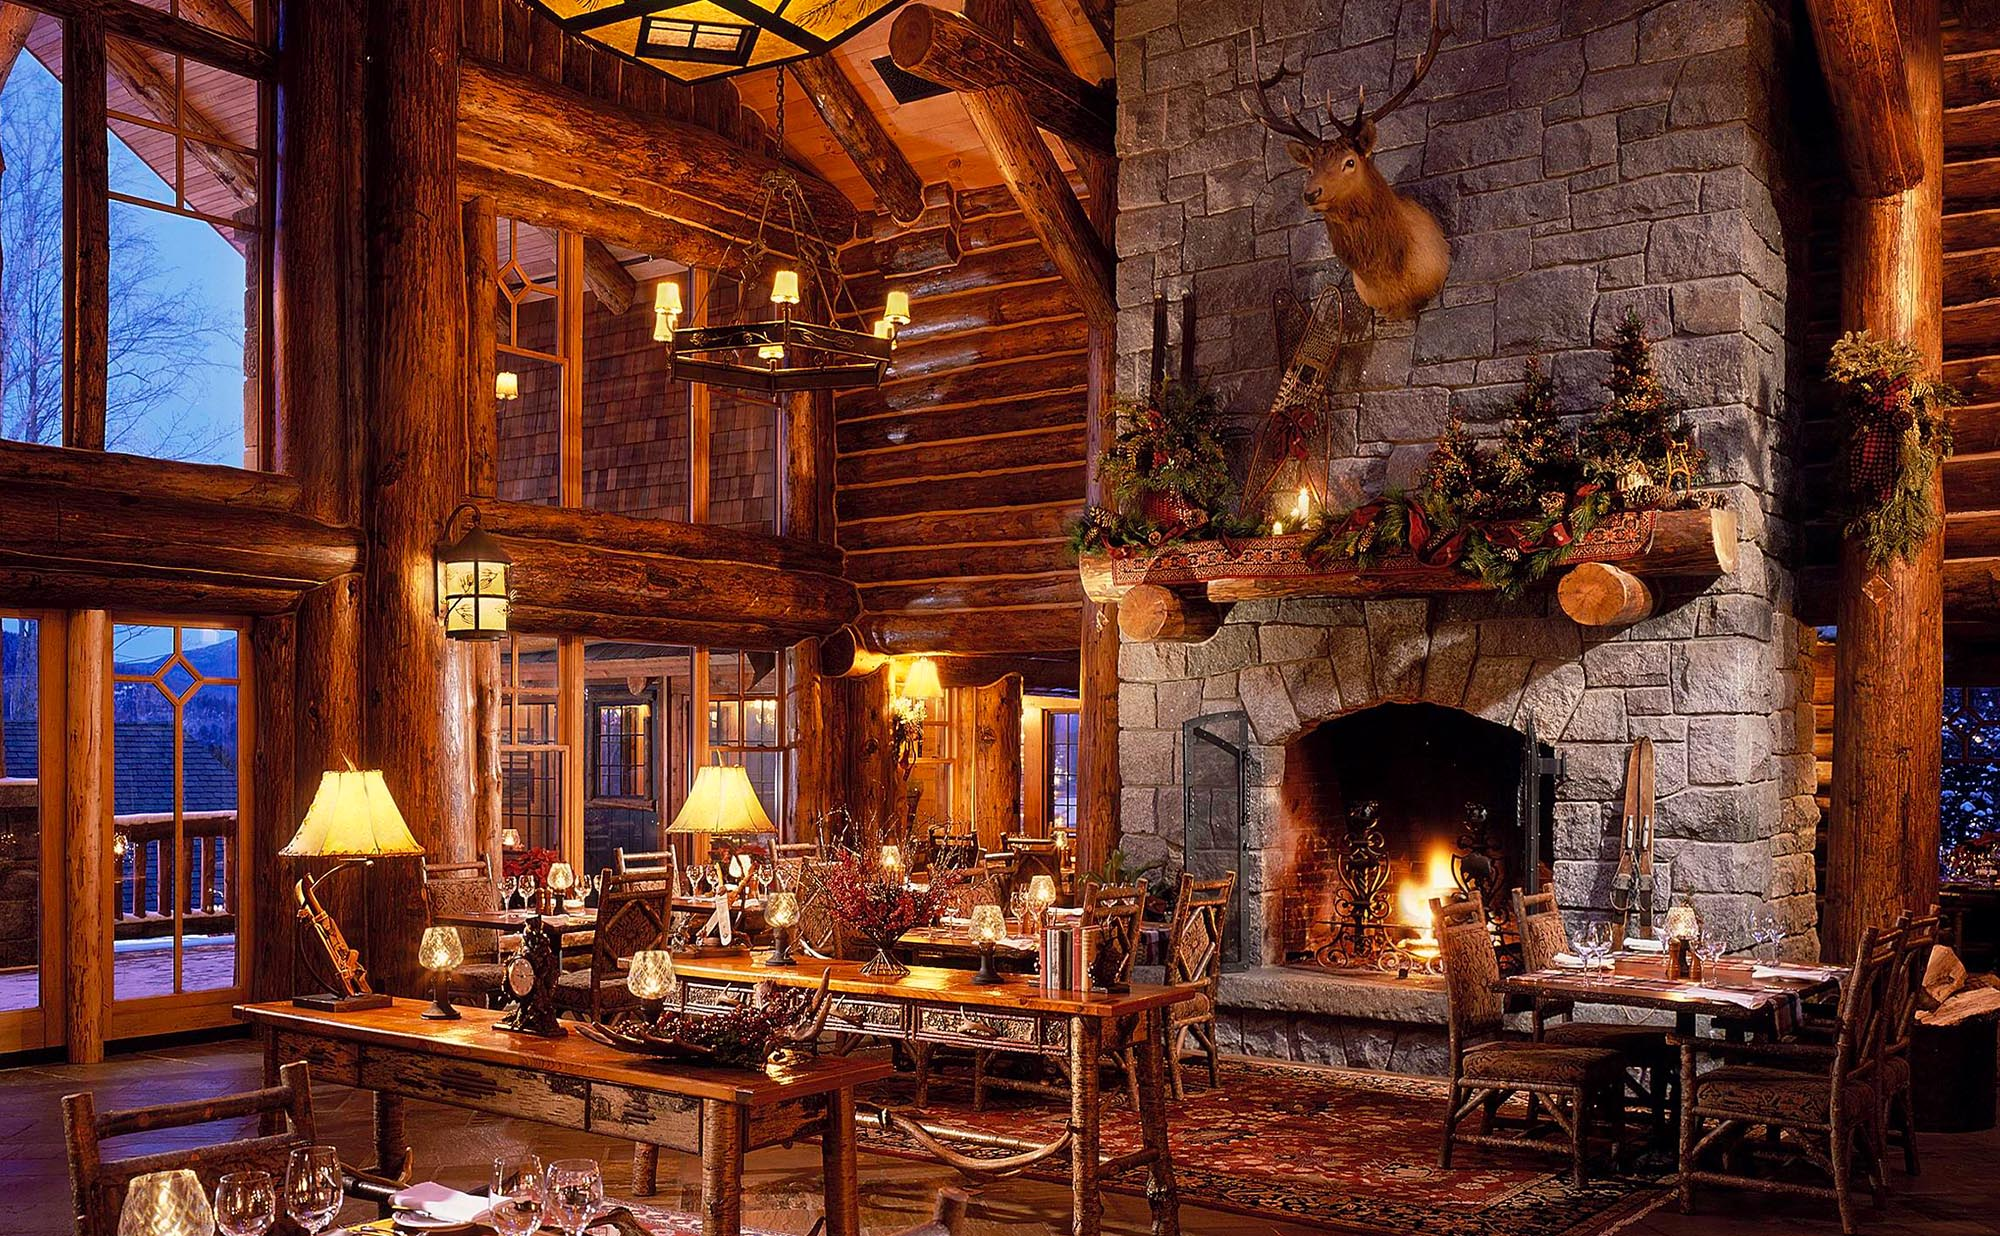 lake placid u0027s whiteface lodge receives coveted forbes four star